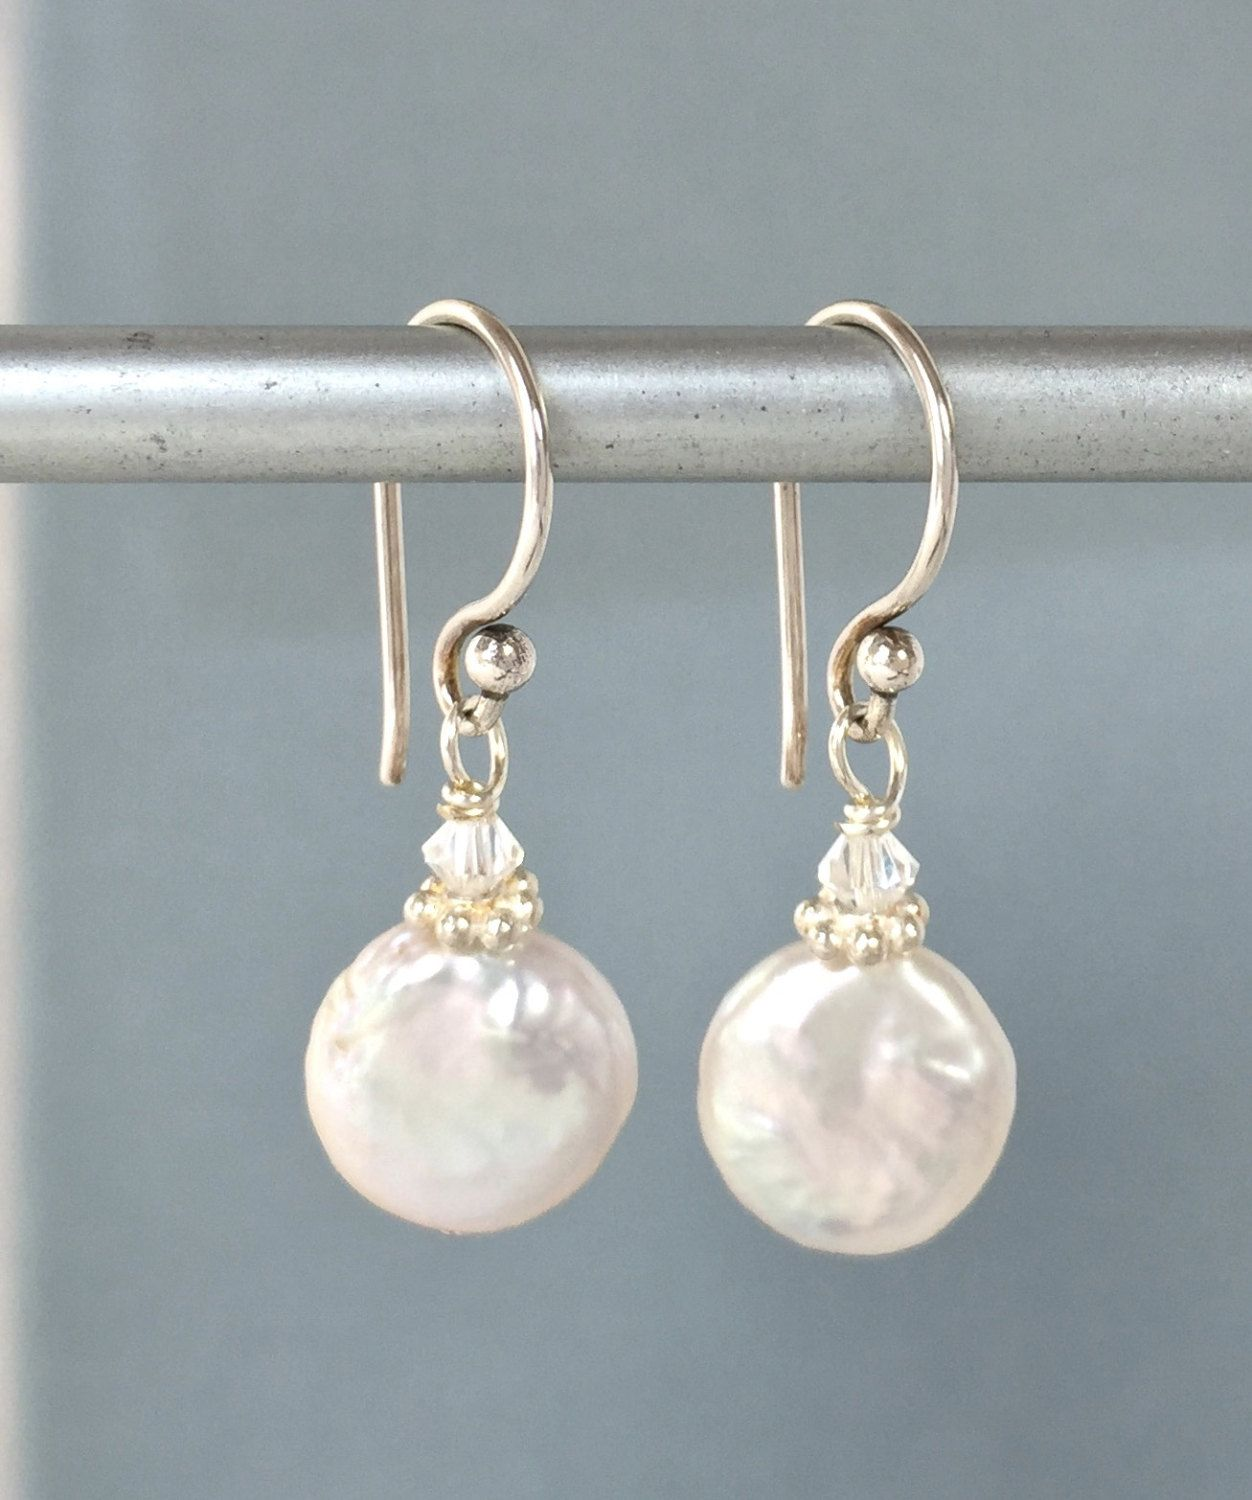 Coin Pearl Earrings  Small Coin Pearls  White Coin Pearls  Coin Pearl  Jewelry  Baroque Pearls  Freshwater Pearls  Small Pearl Earrings